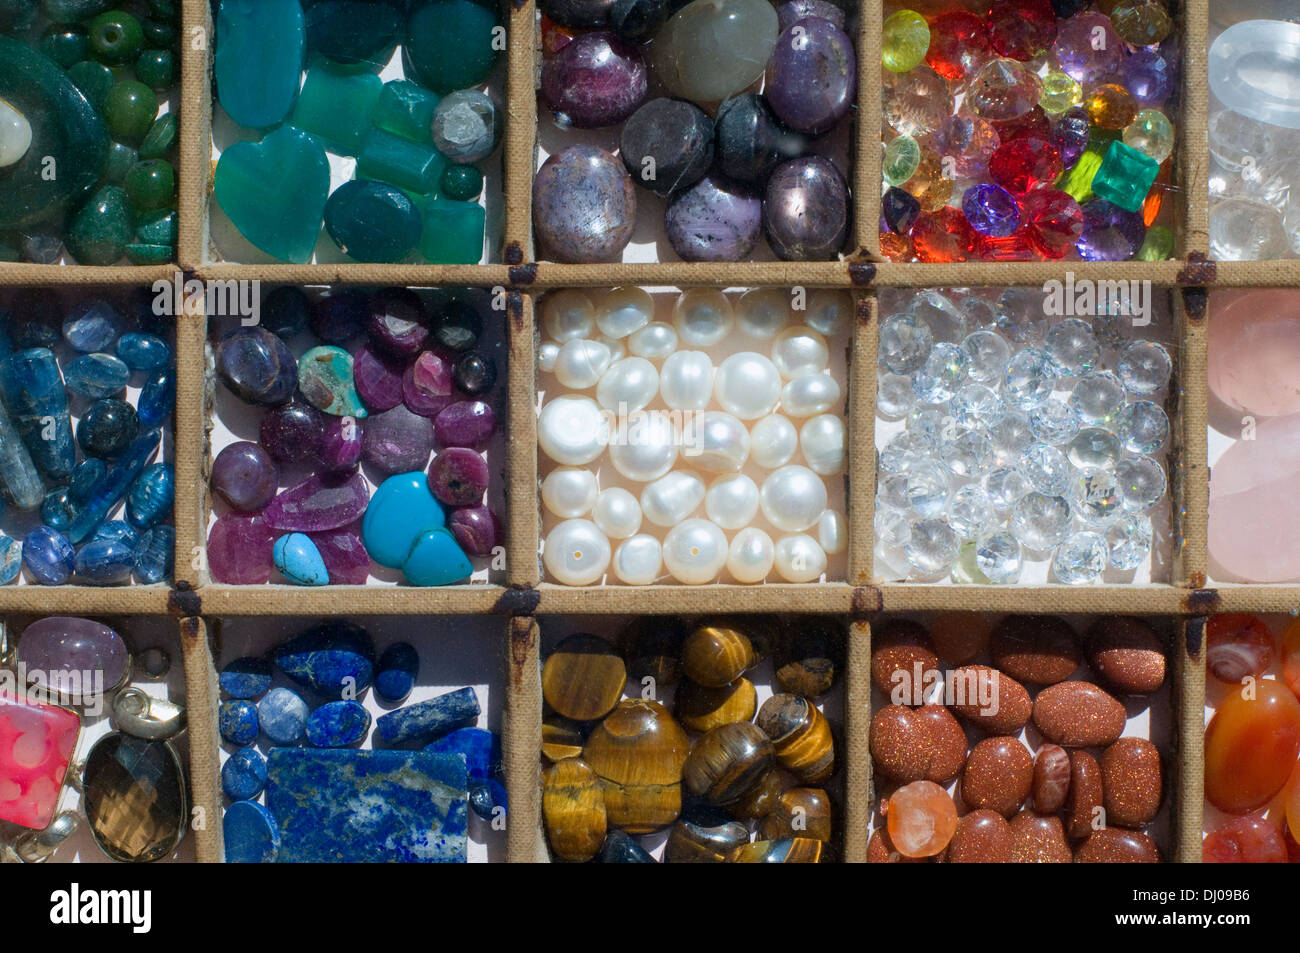 Semi precious stone for sale in their little boxes. Tigers eye, lapiz, pearls, smoky quartz, crystal - Stock Image